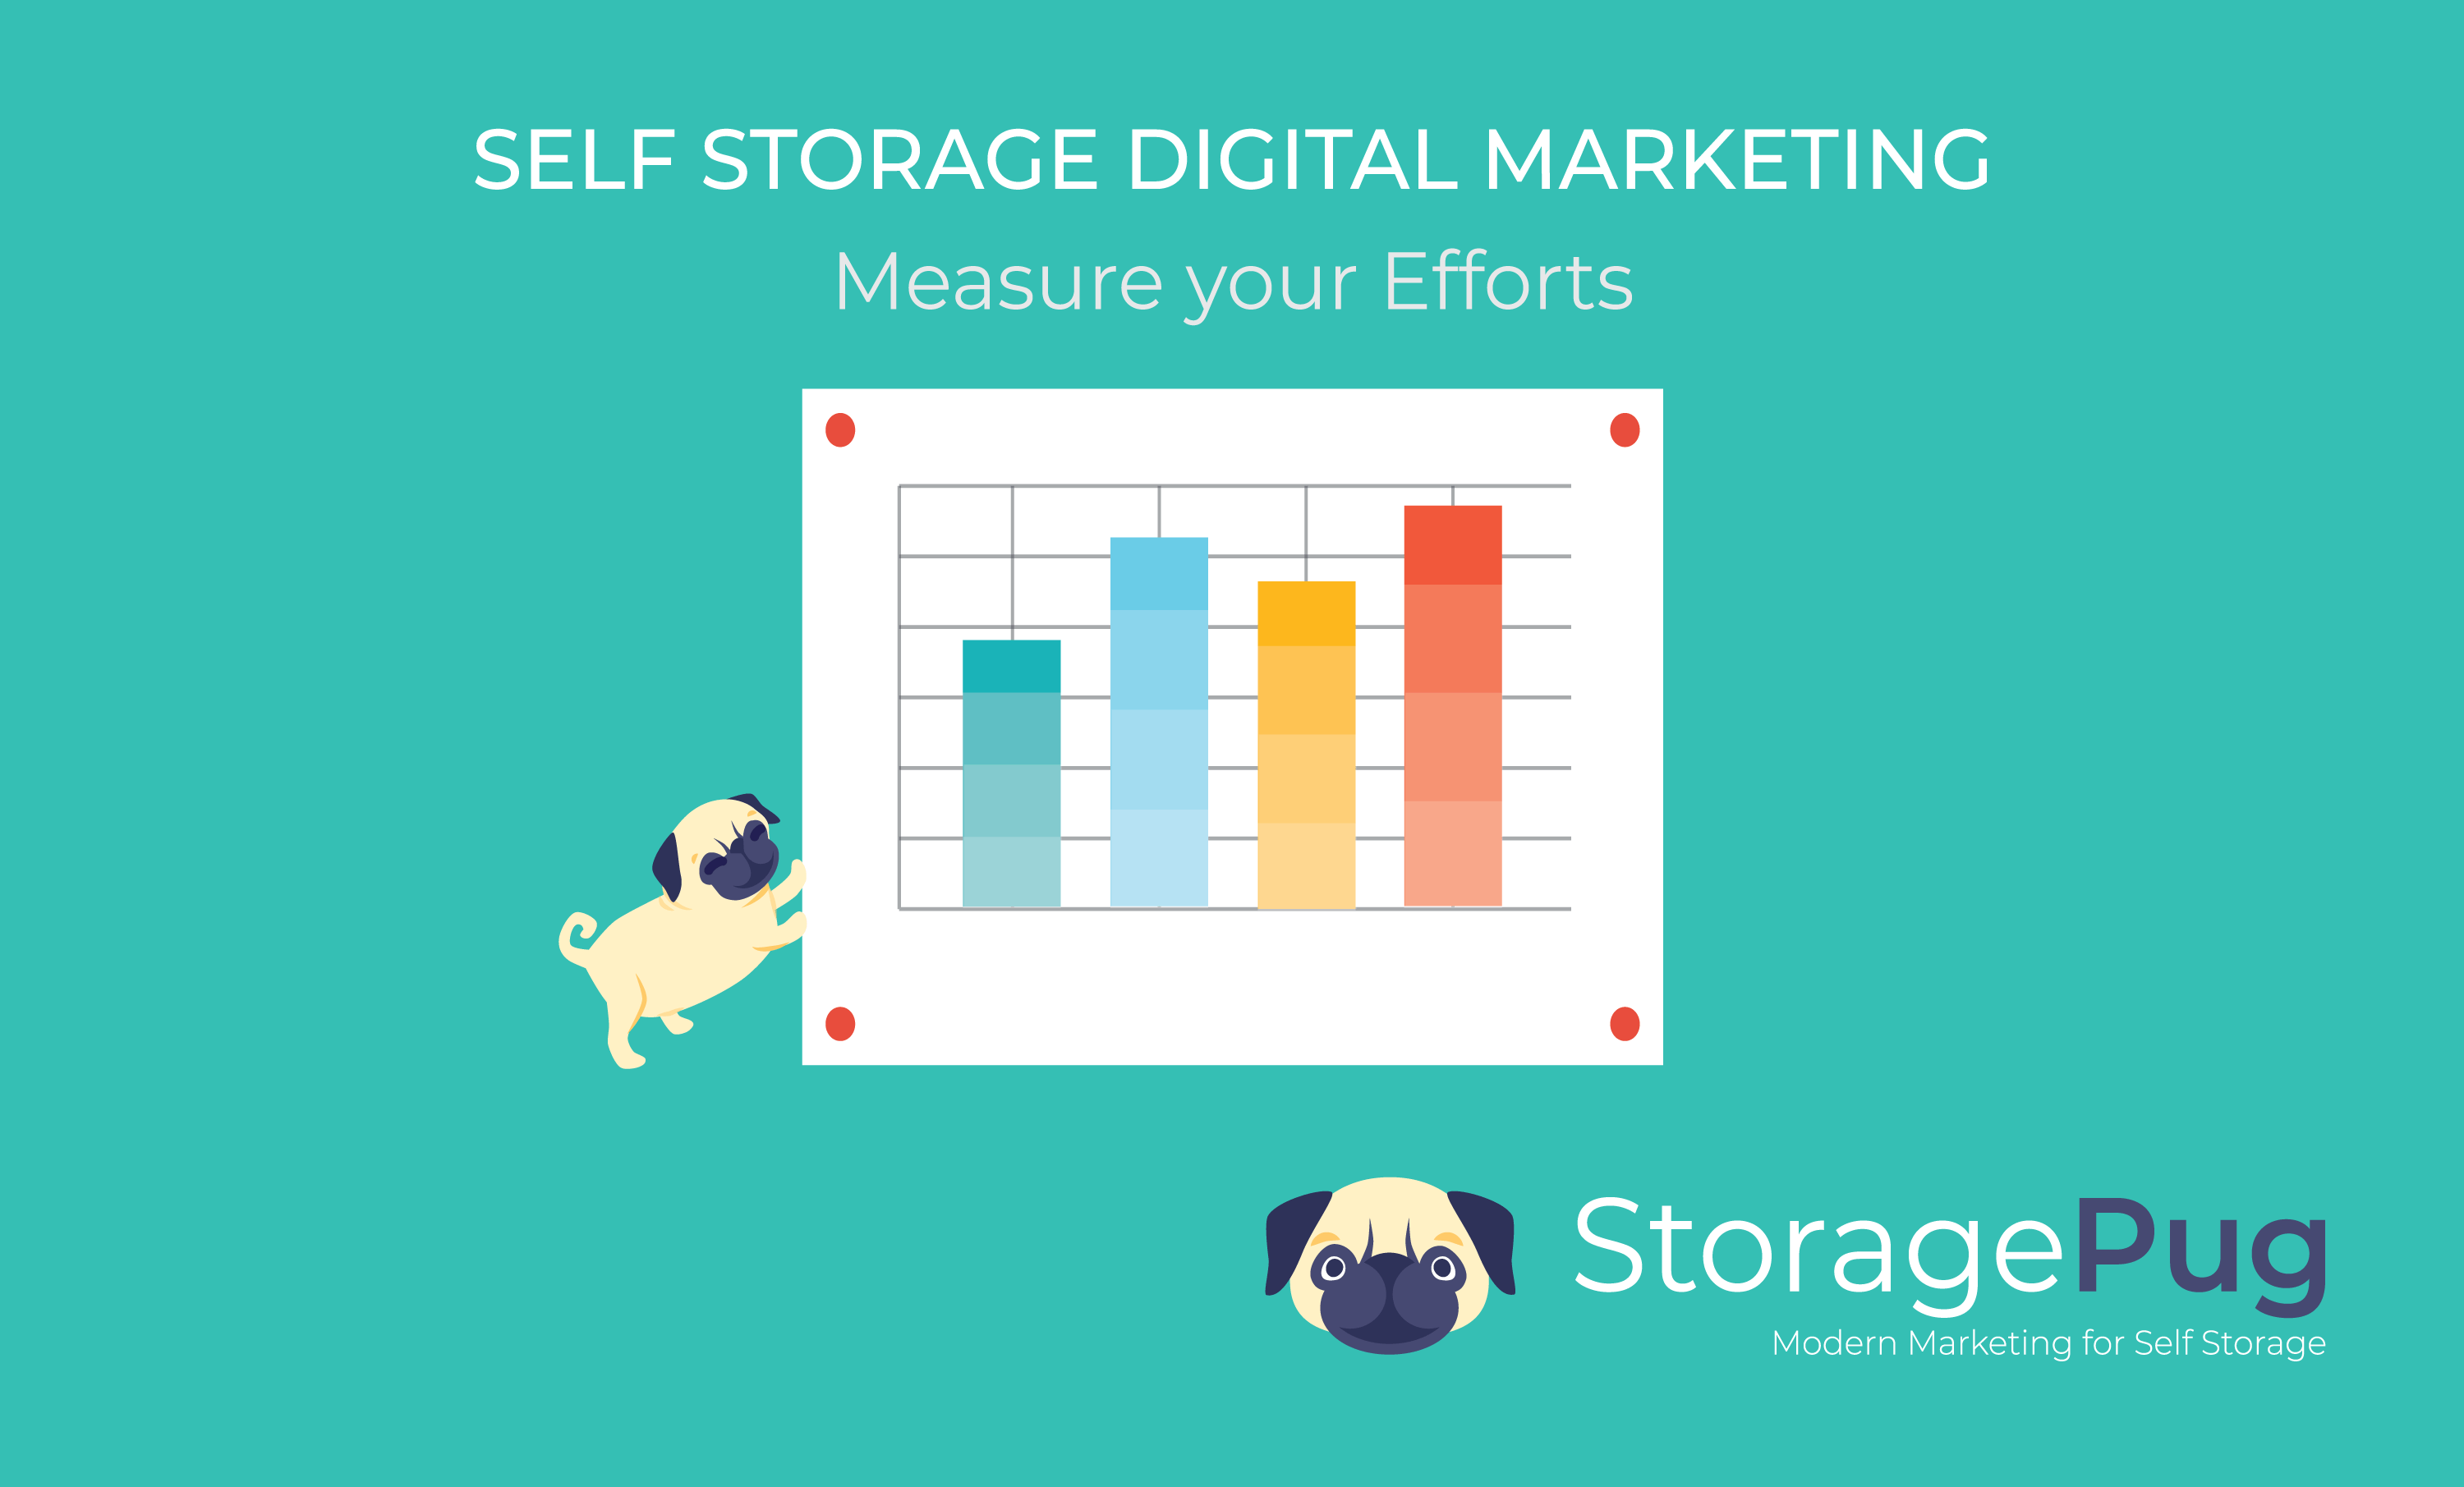 Measuring your self storage digital marketing efforts is the process of gathering the results of your online marketing efforts with Marketing analytics.  This data includes how your actions affect the journey of your customers and clients.